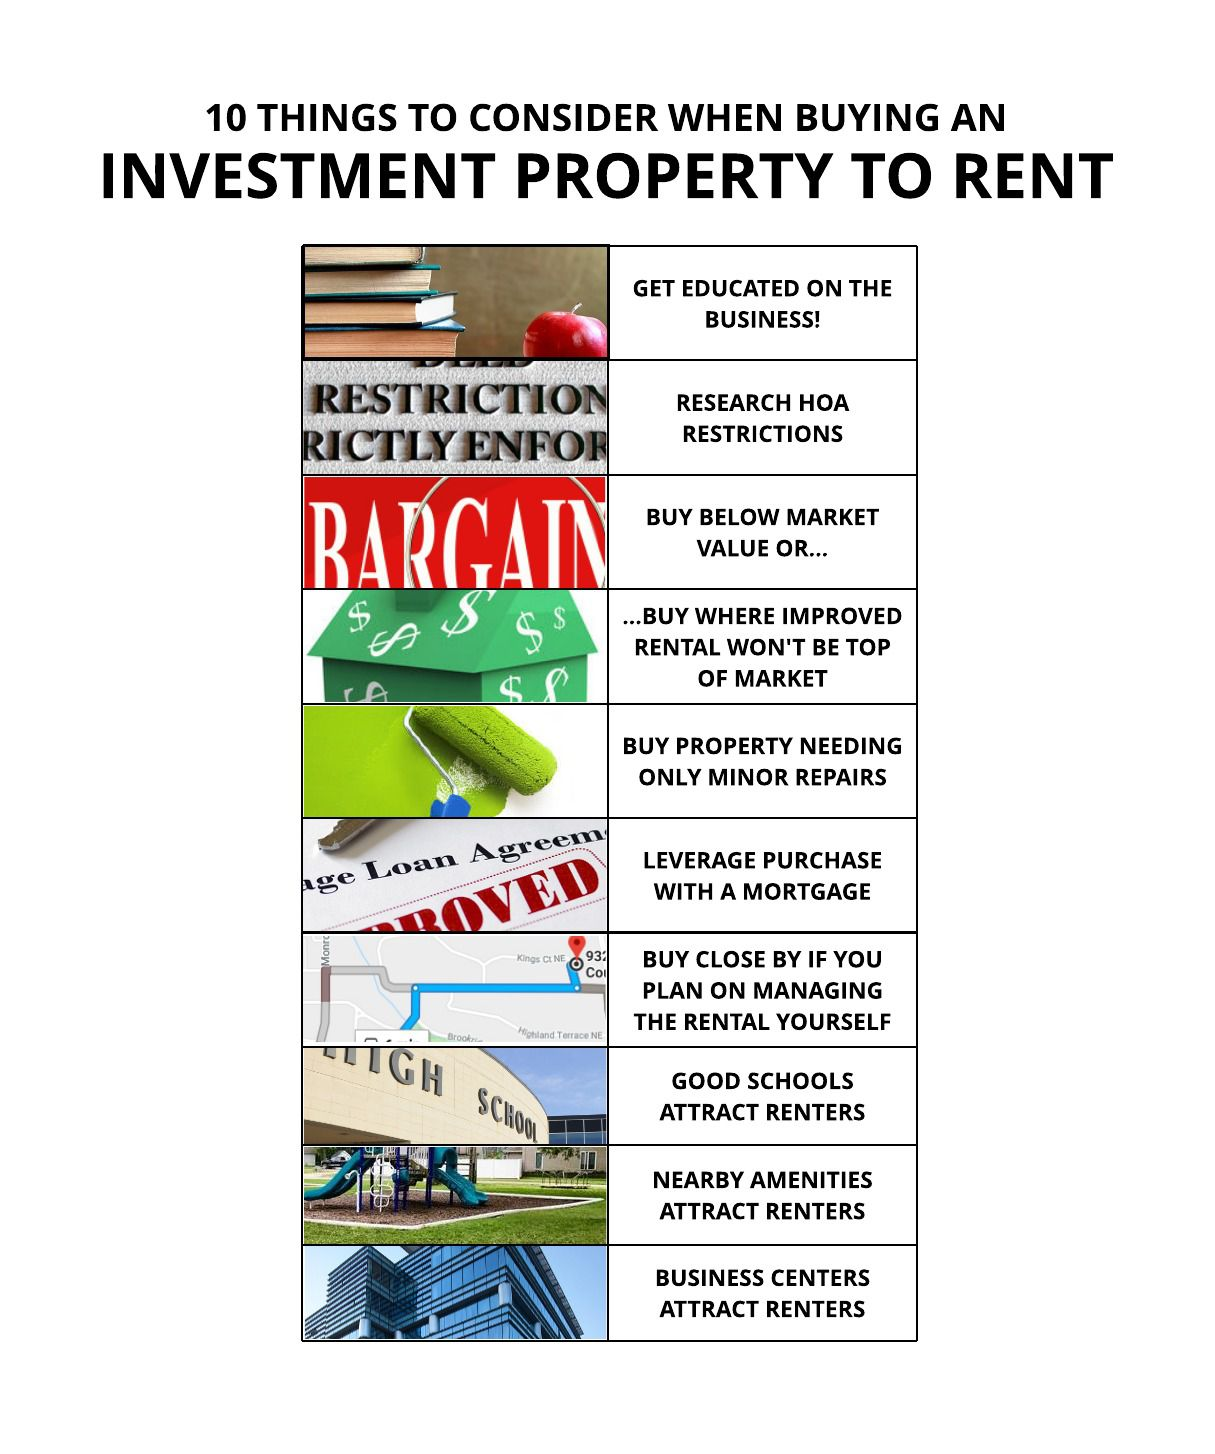 10 Considerations for Investment Property